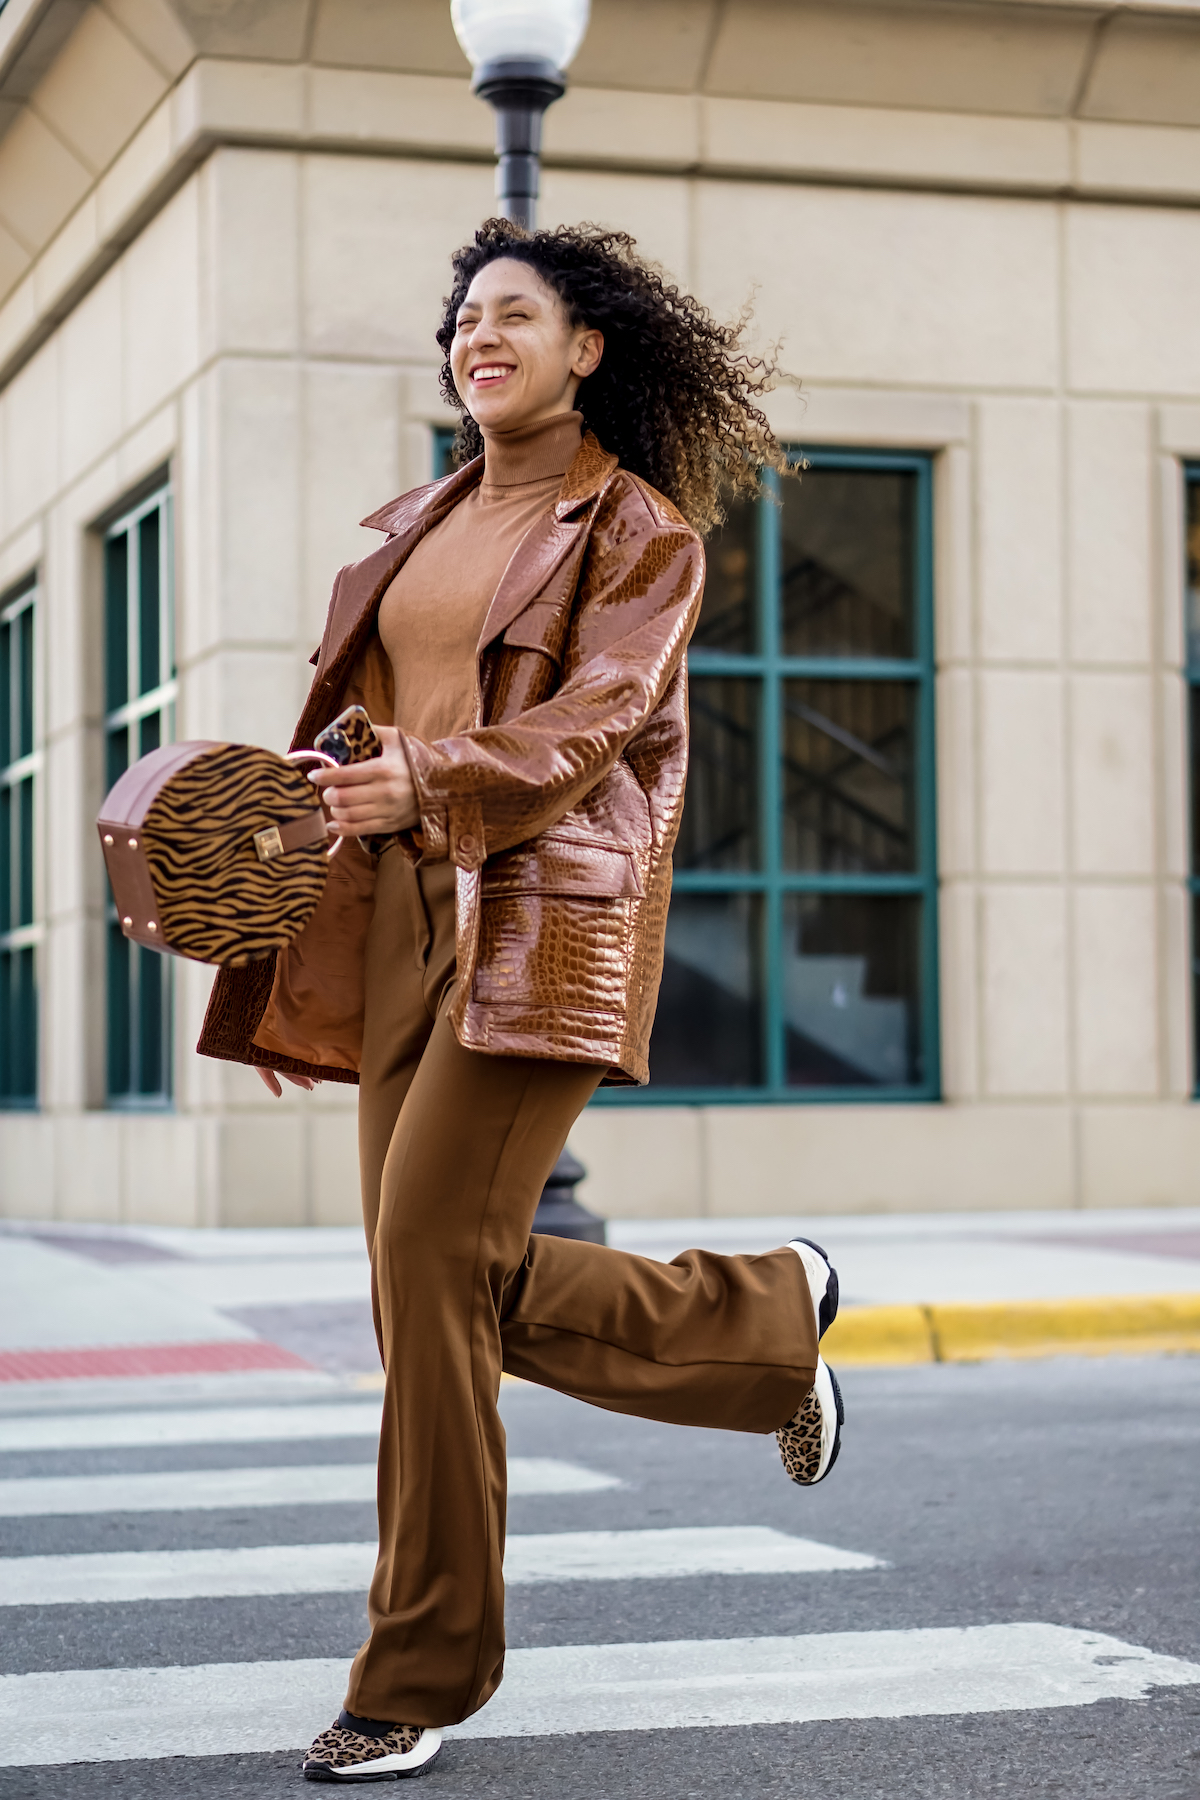 brown leather jacket outfit, spring outfits women 20s young professional fashion blogs, black fashion bloggers inspiration, wardrobe building ideas, spring outfits women casual fashion ideas color combos, black fashion blogger style outfits